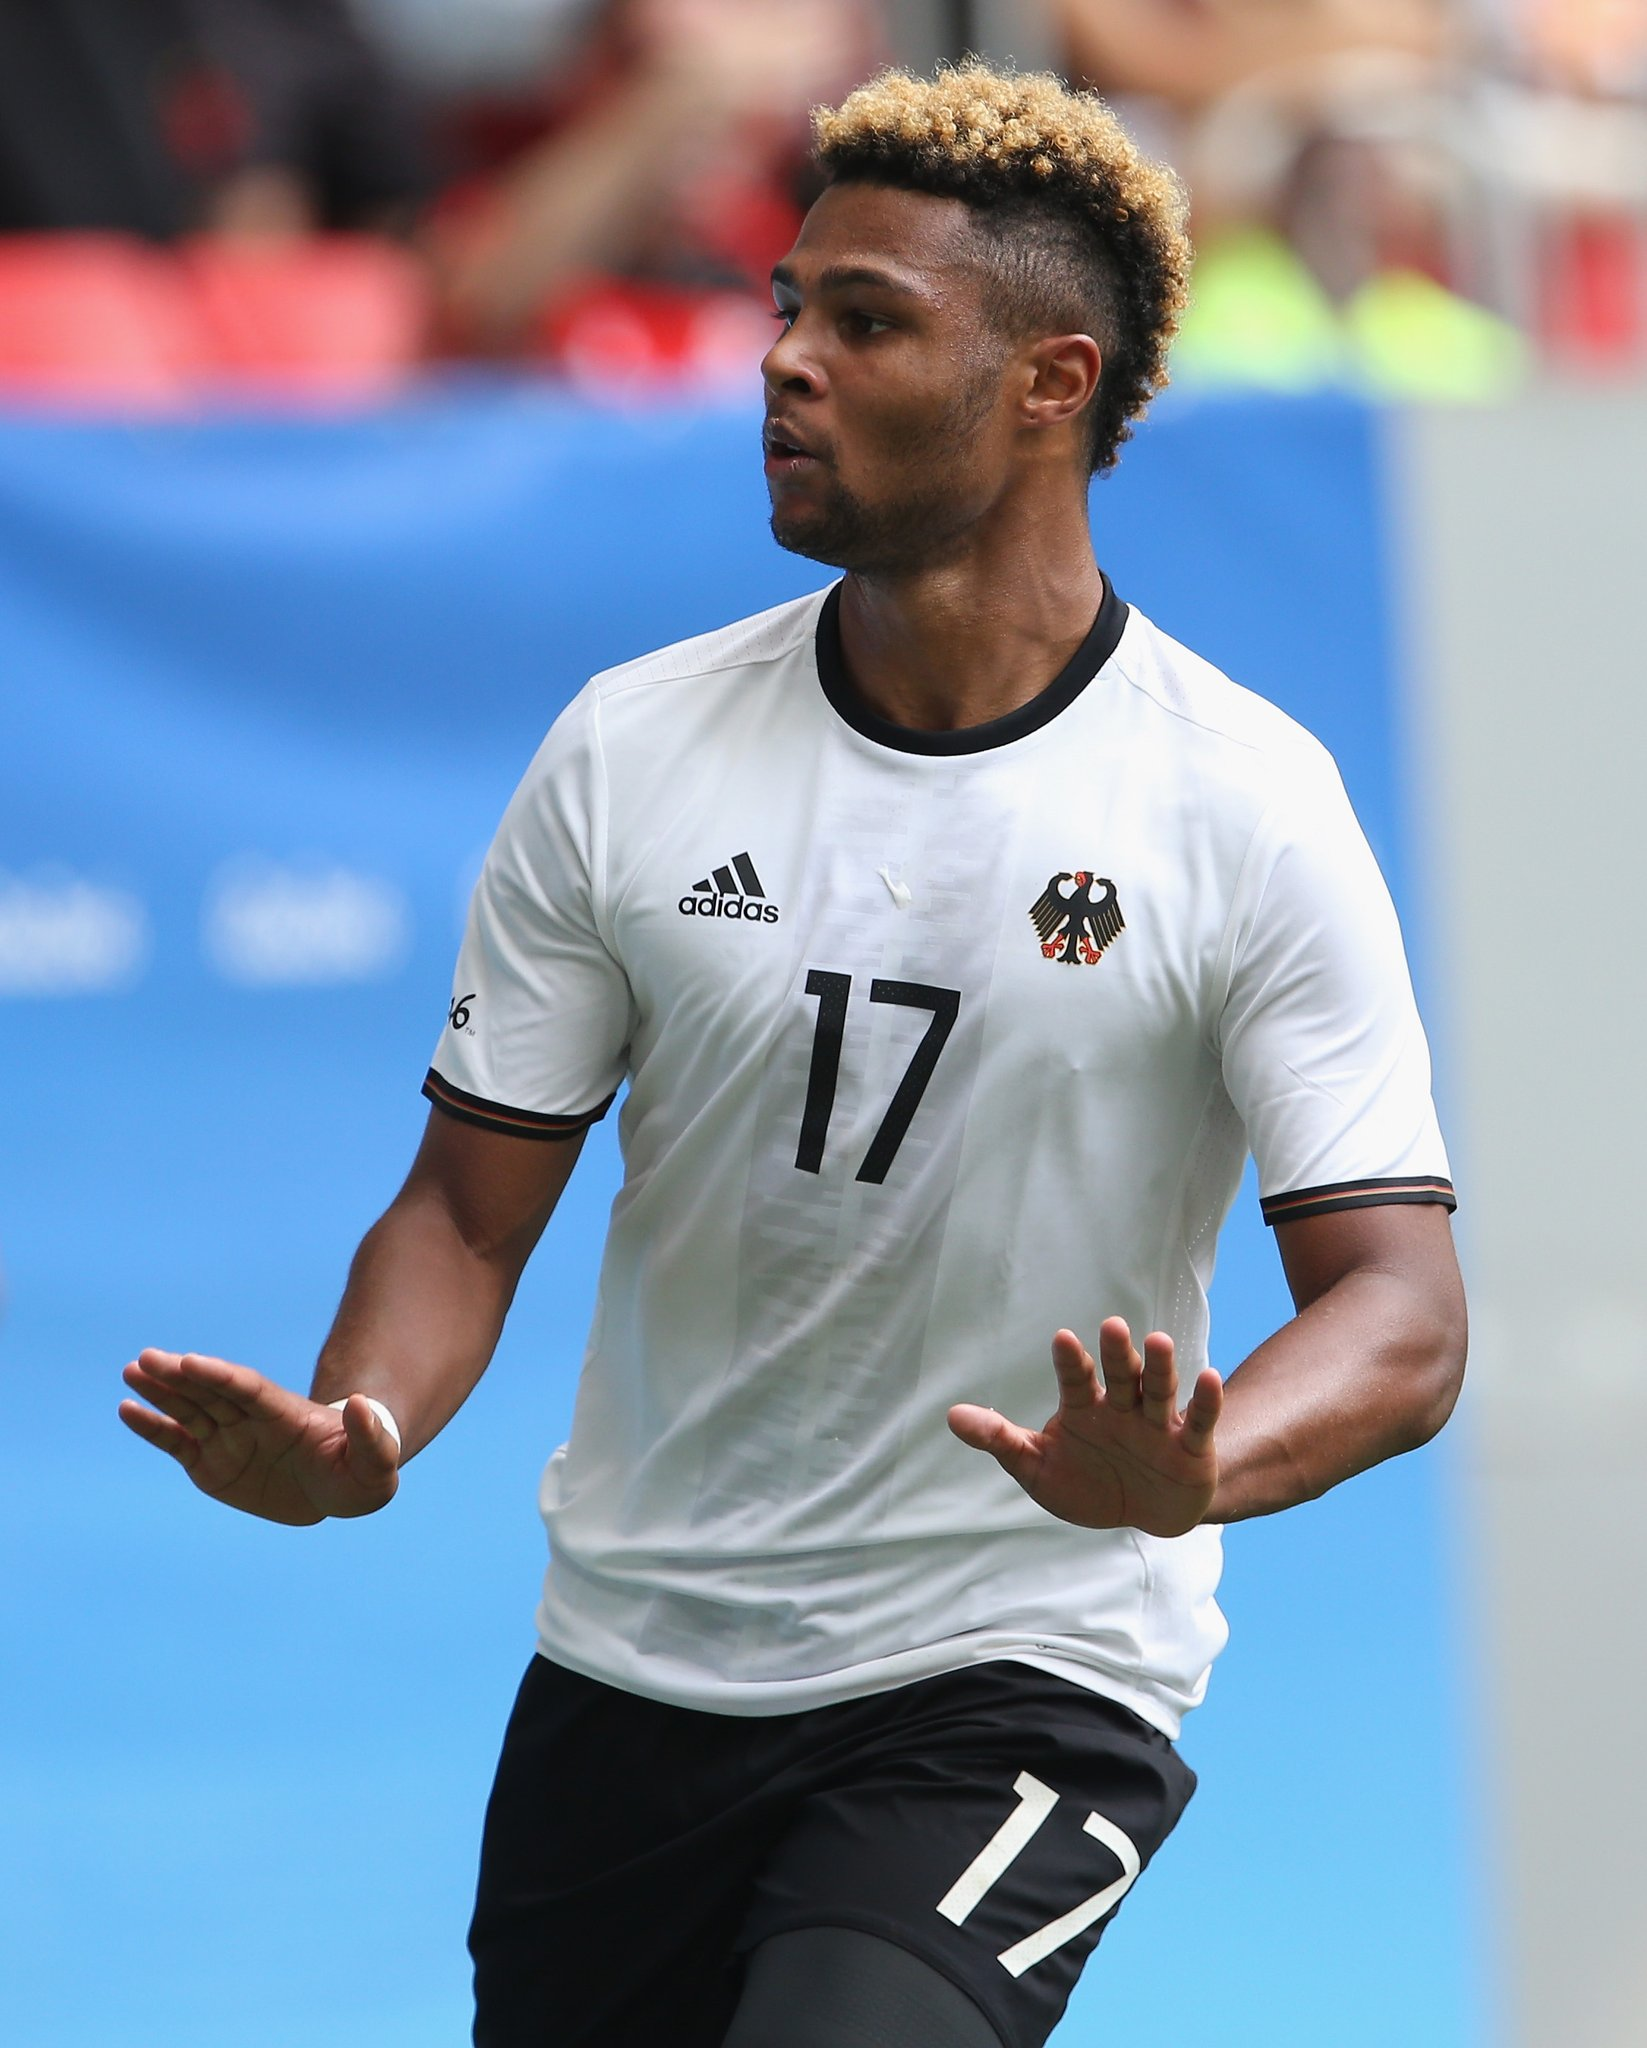 Arsenal Star Gnabry Backs Germany To Beat Olympic Eagles